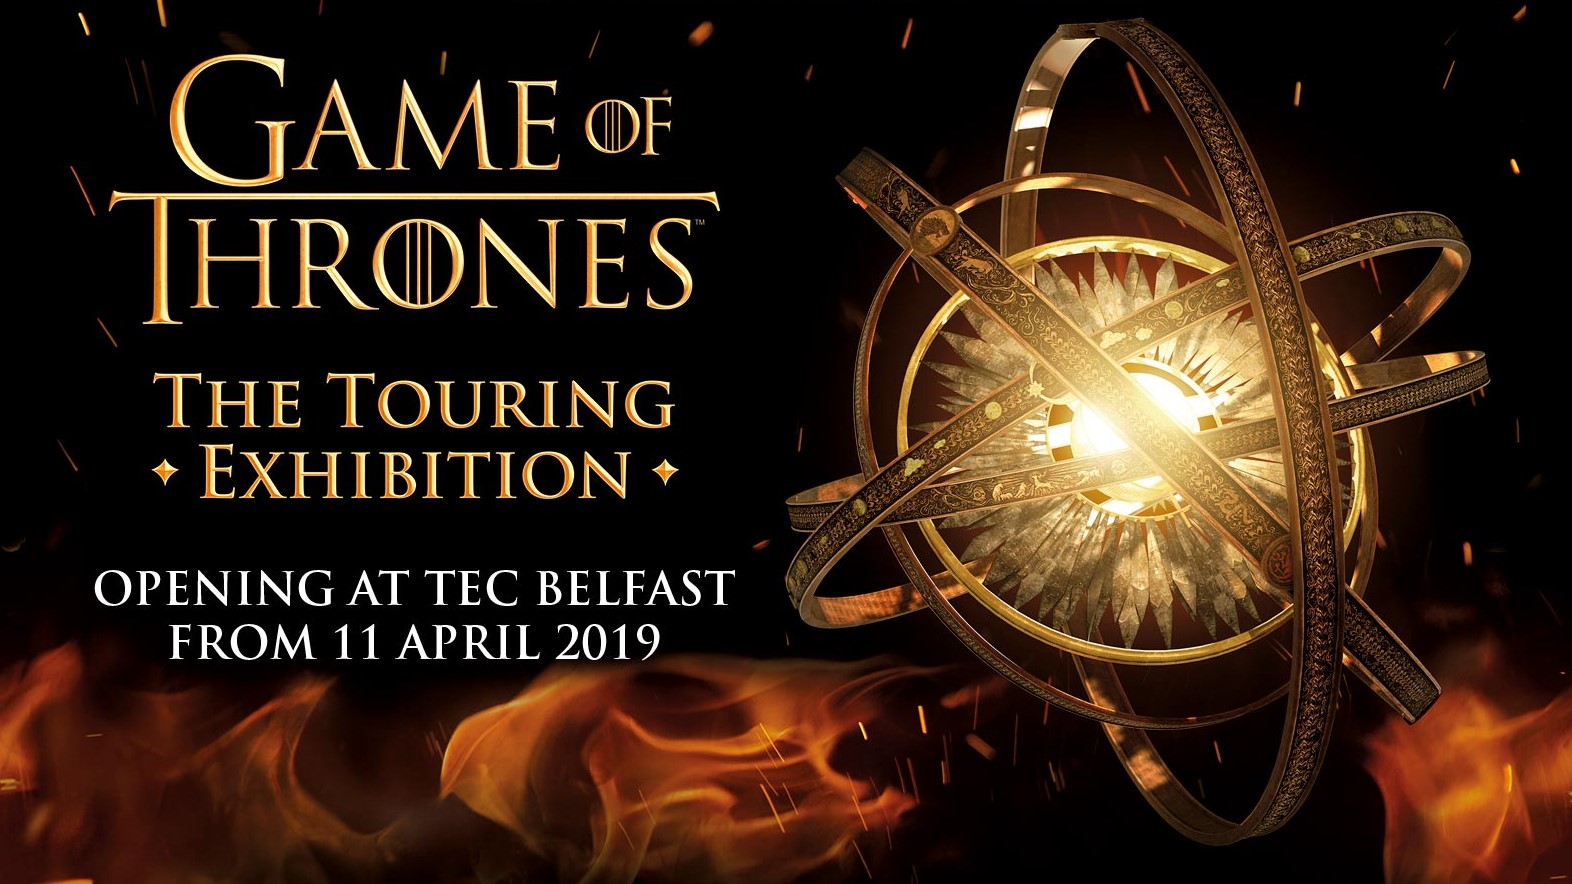 Game of Thrones Belfast Touring Exhibition